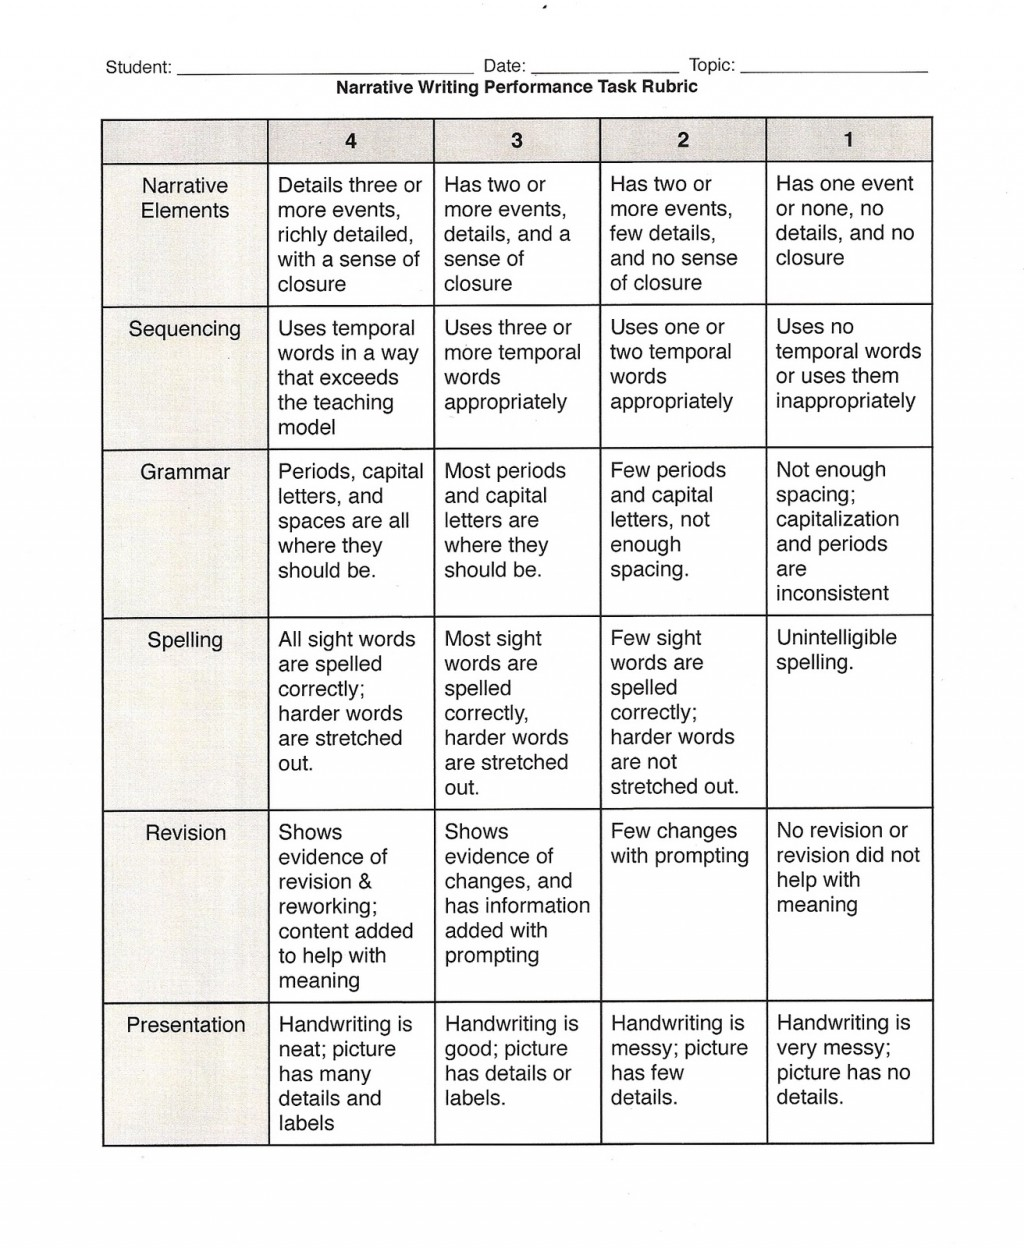 004 Compare And Contrast Essay Rubric Teacher20rubric Wondrous 3rd Grade High School Large